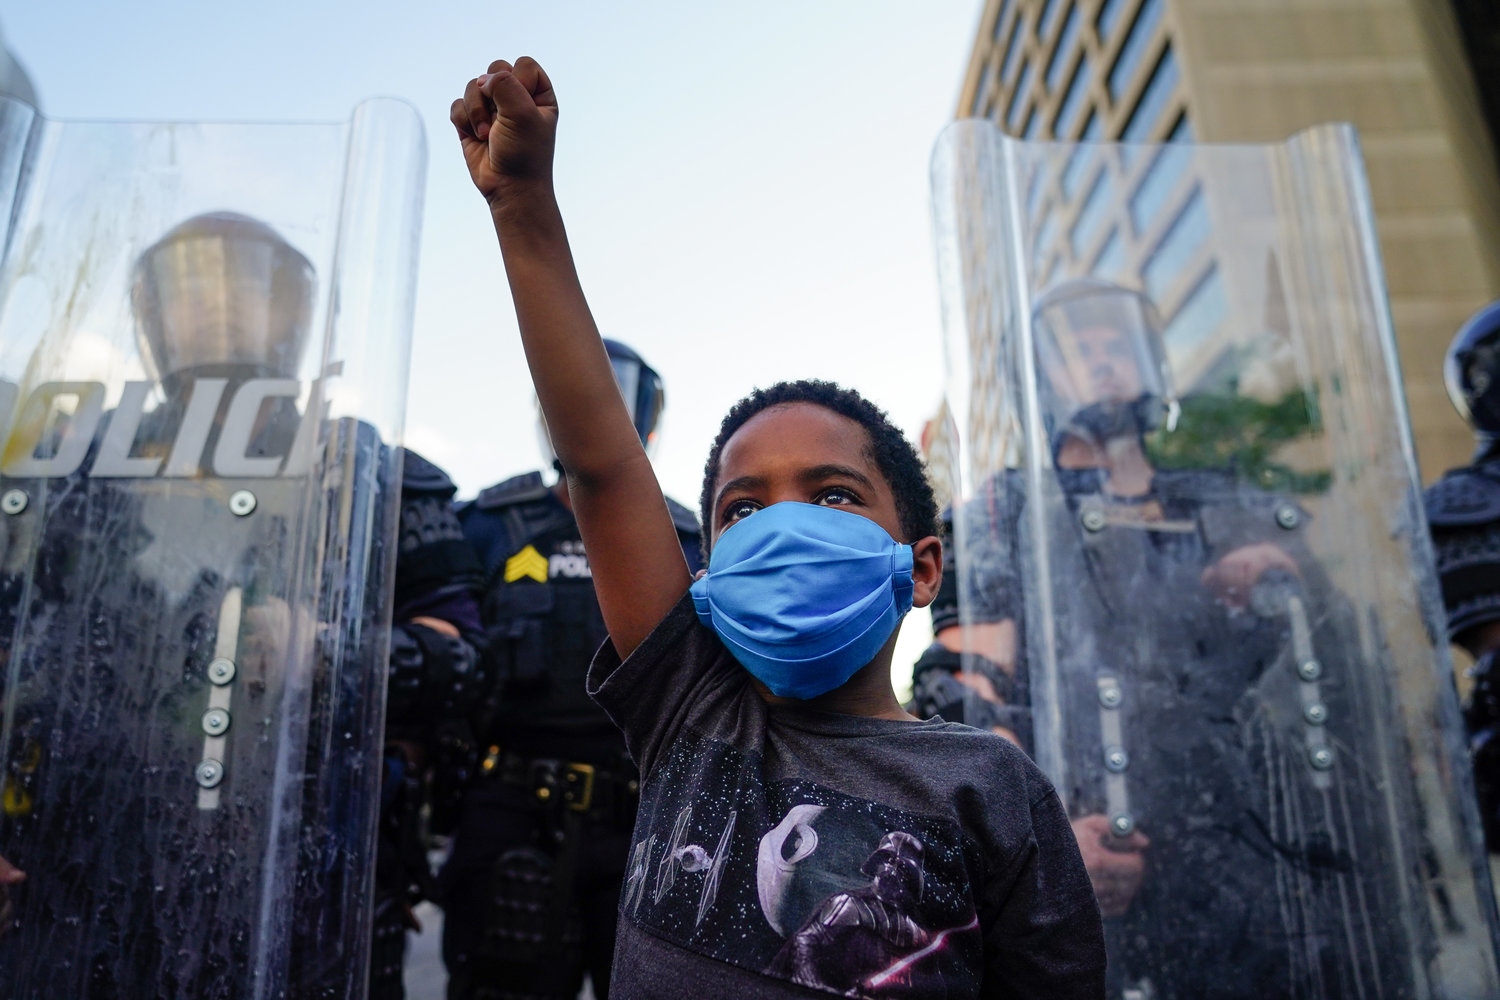 Q&A: Talking To Kids About Black Lives And Police Violence